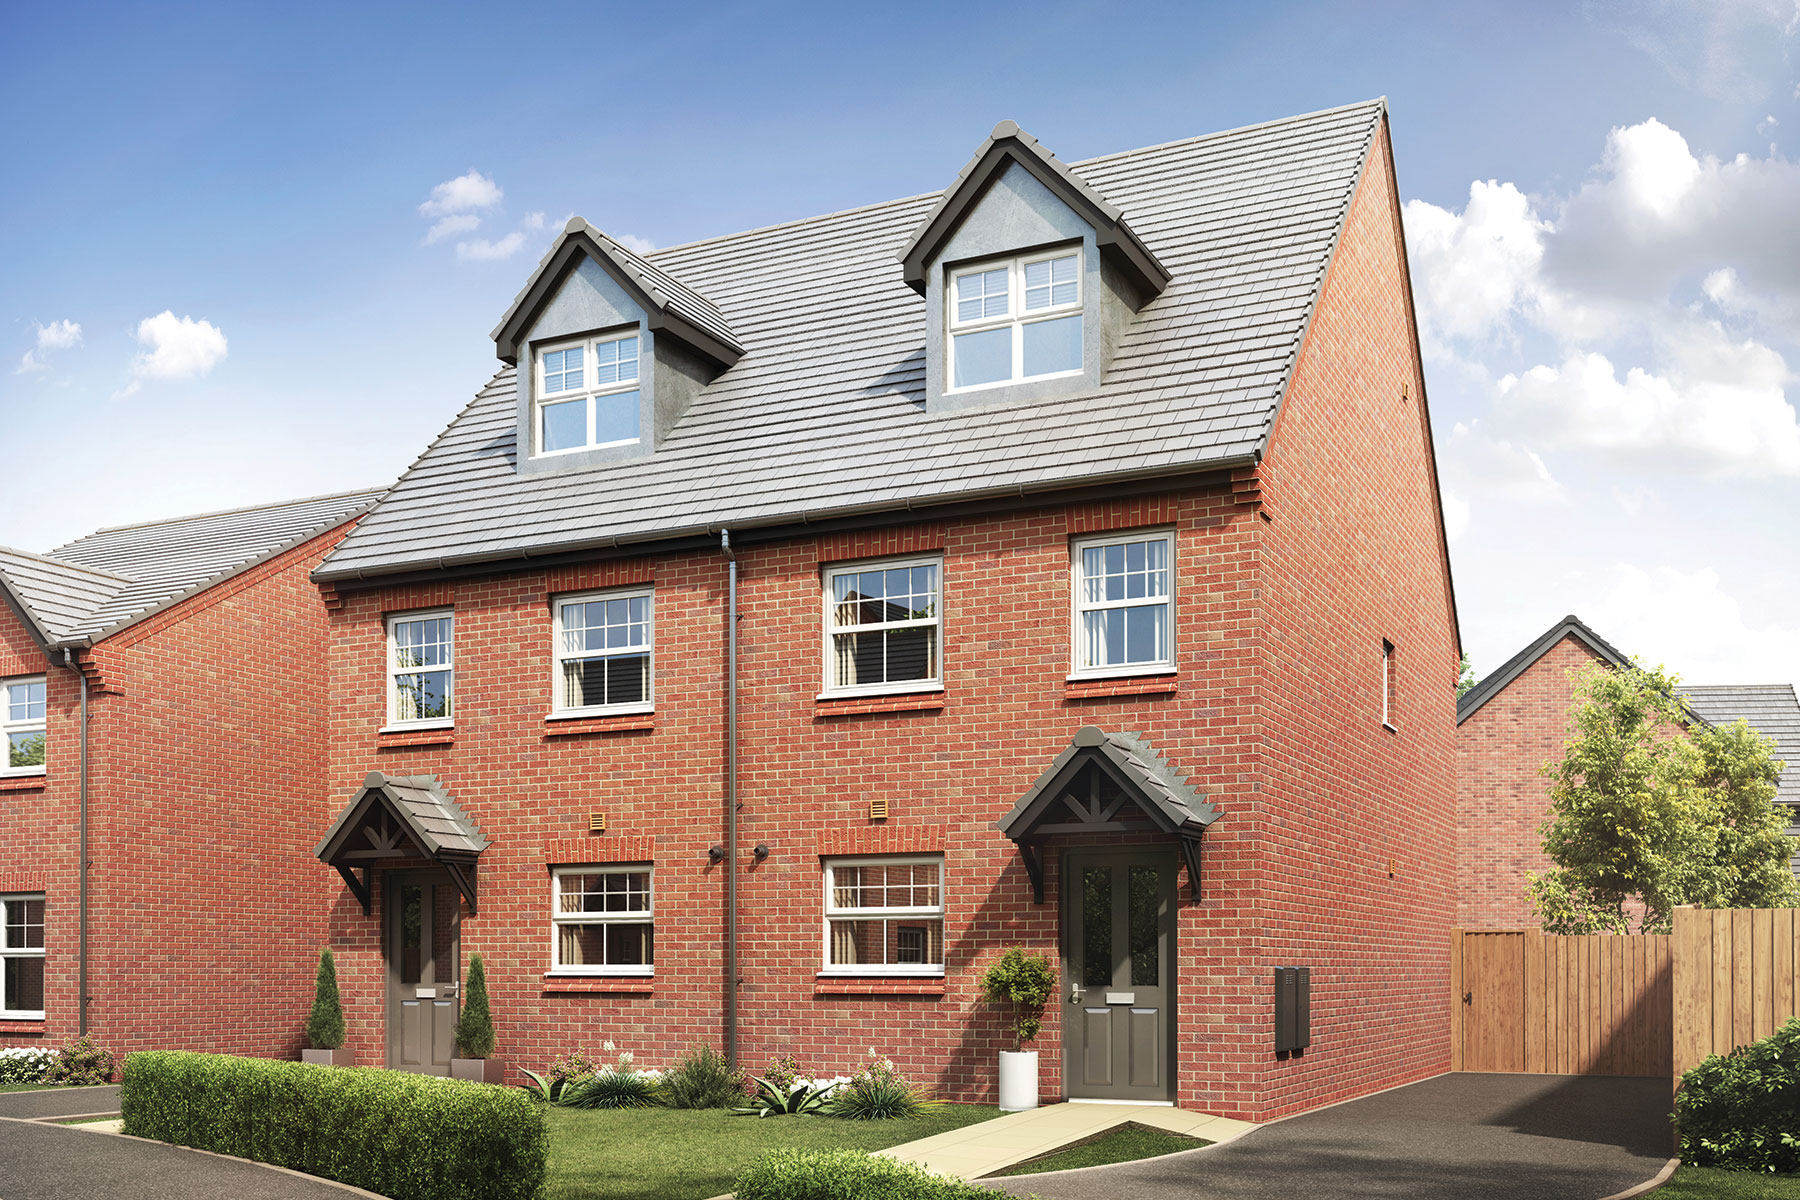 PB35G-Alton-G-plots-V1-12-13-Village-Heart-Variant